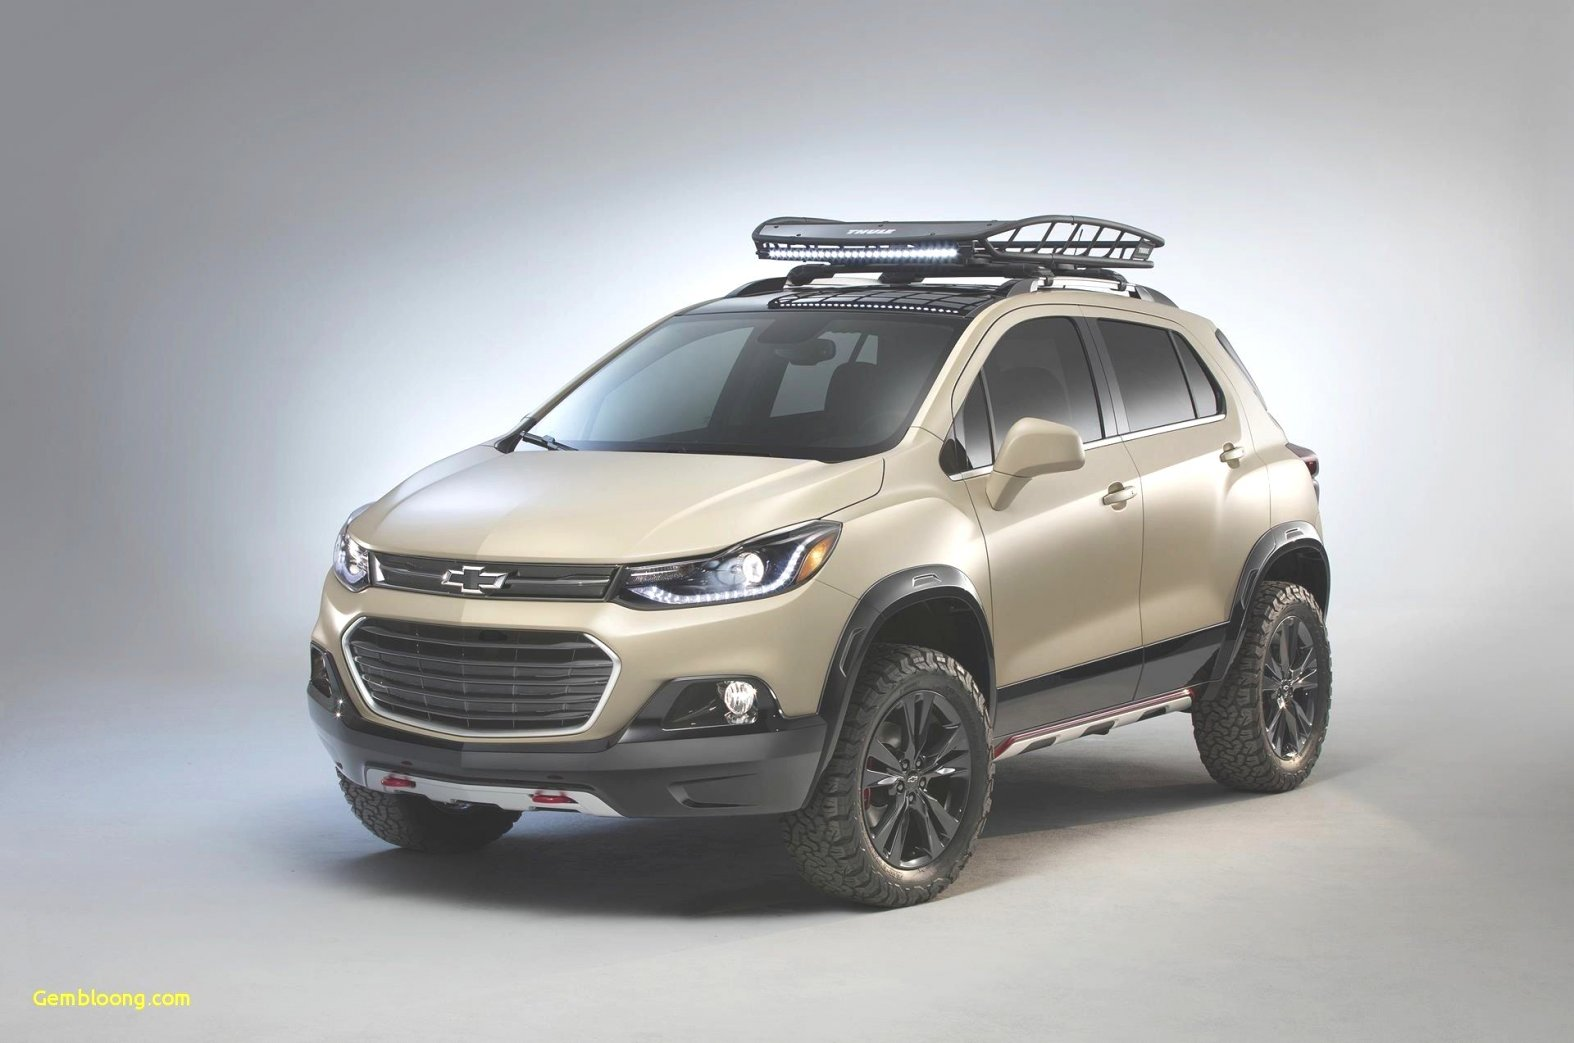 2020 chevrolet trax Price, Design and Review